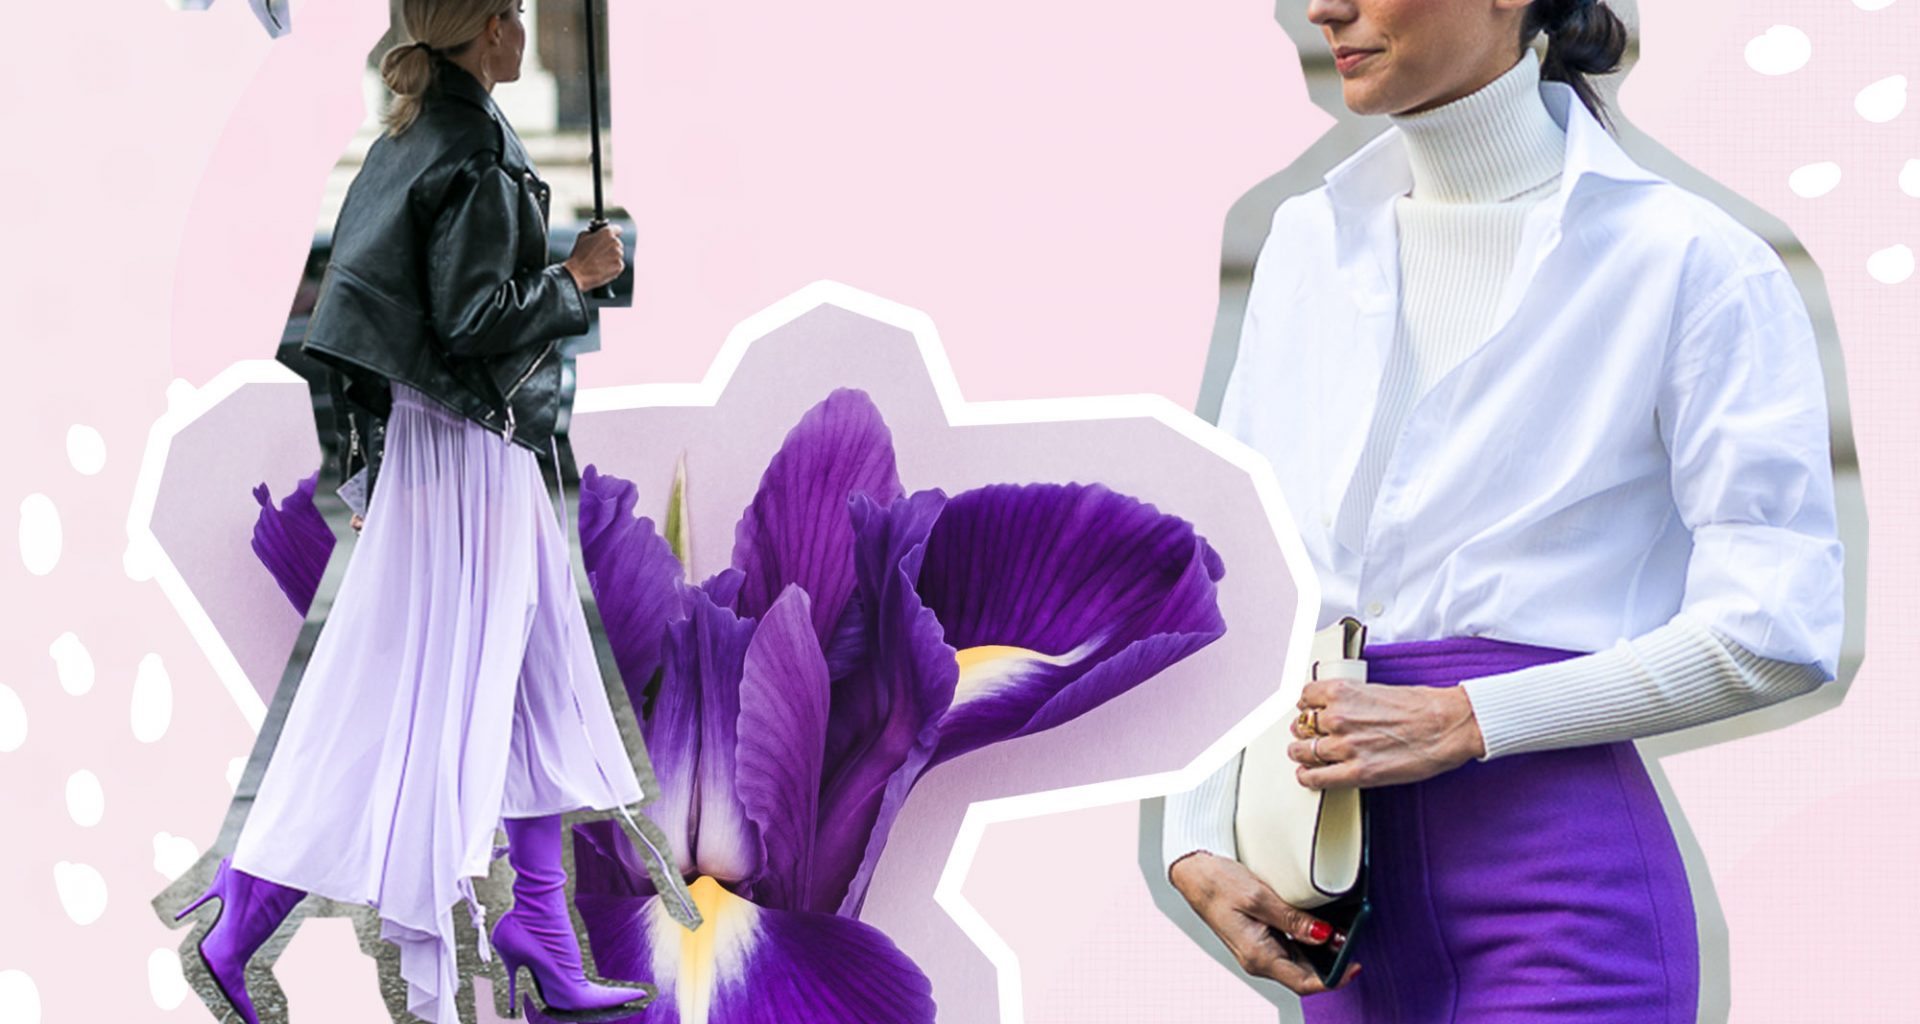 Colour of the Year by Pantone - Ultra Violet